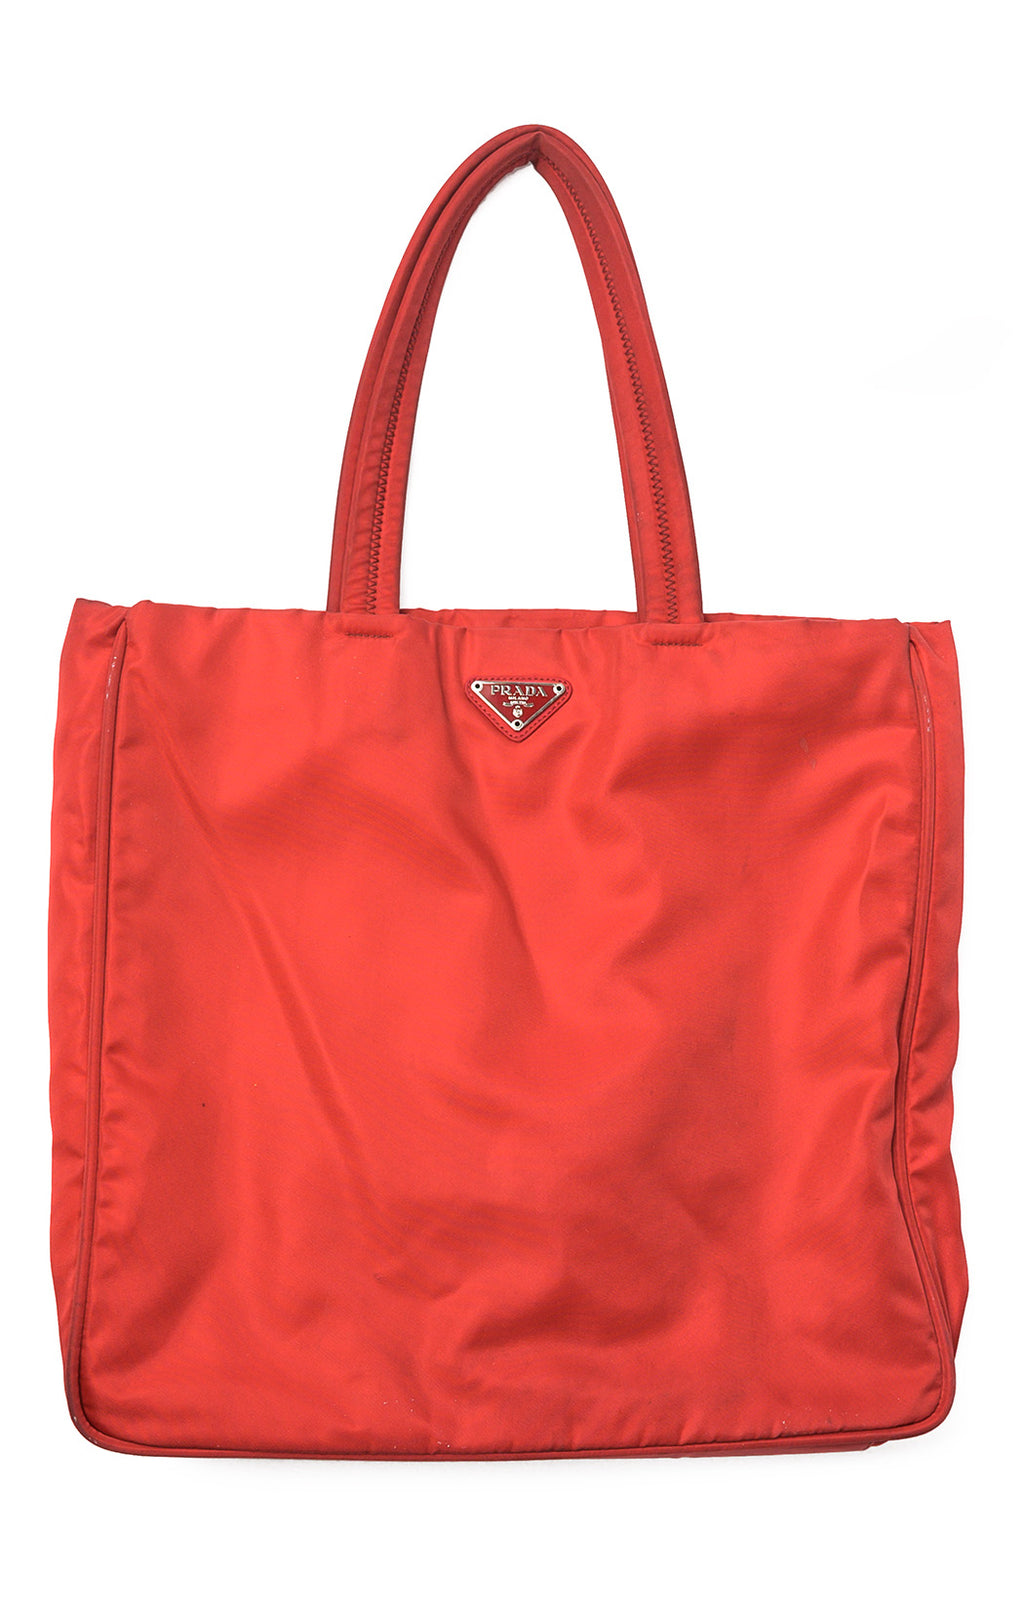 "Front view of PRADA Tote Size: 13.5"" W x 13"" H x 2.75"" D"